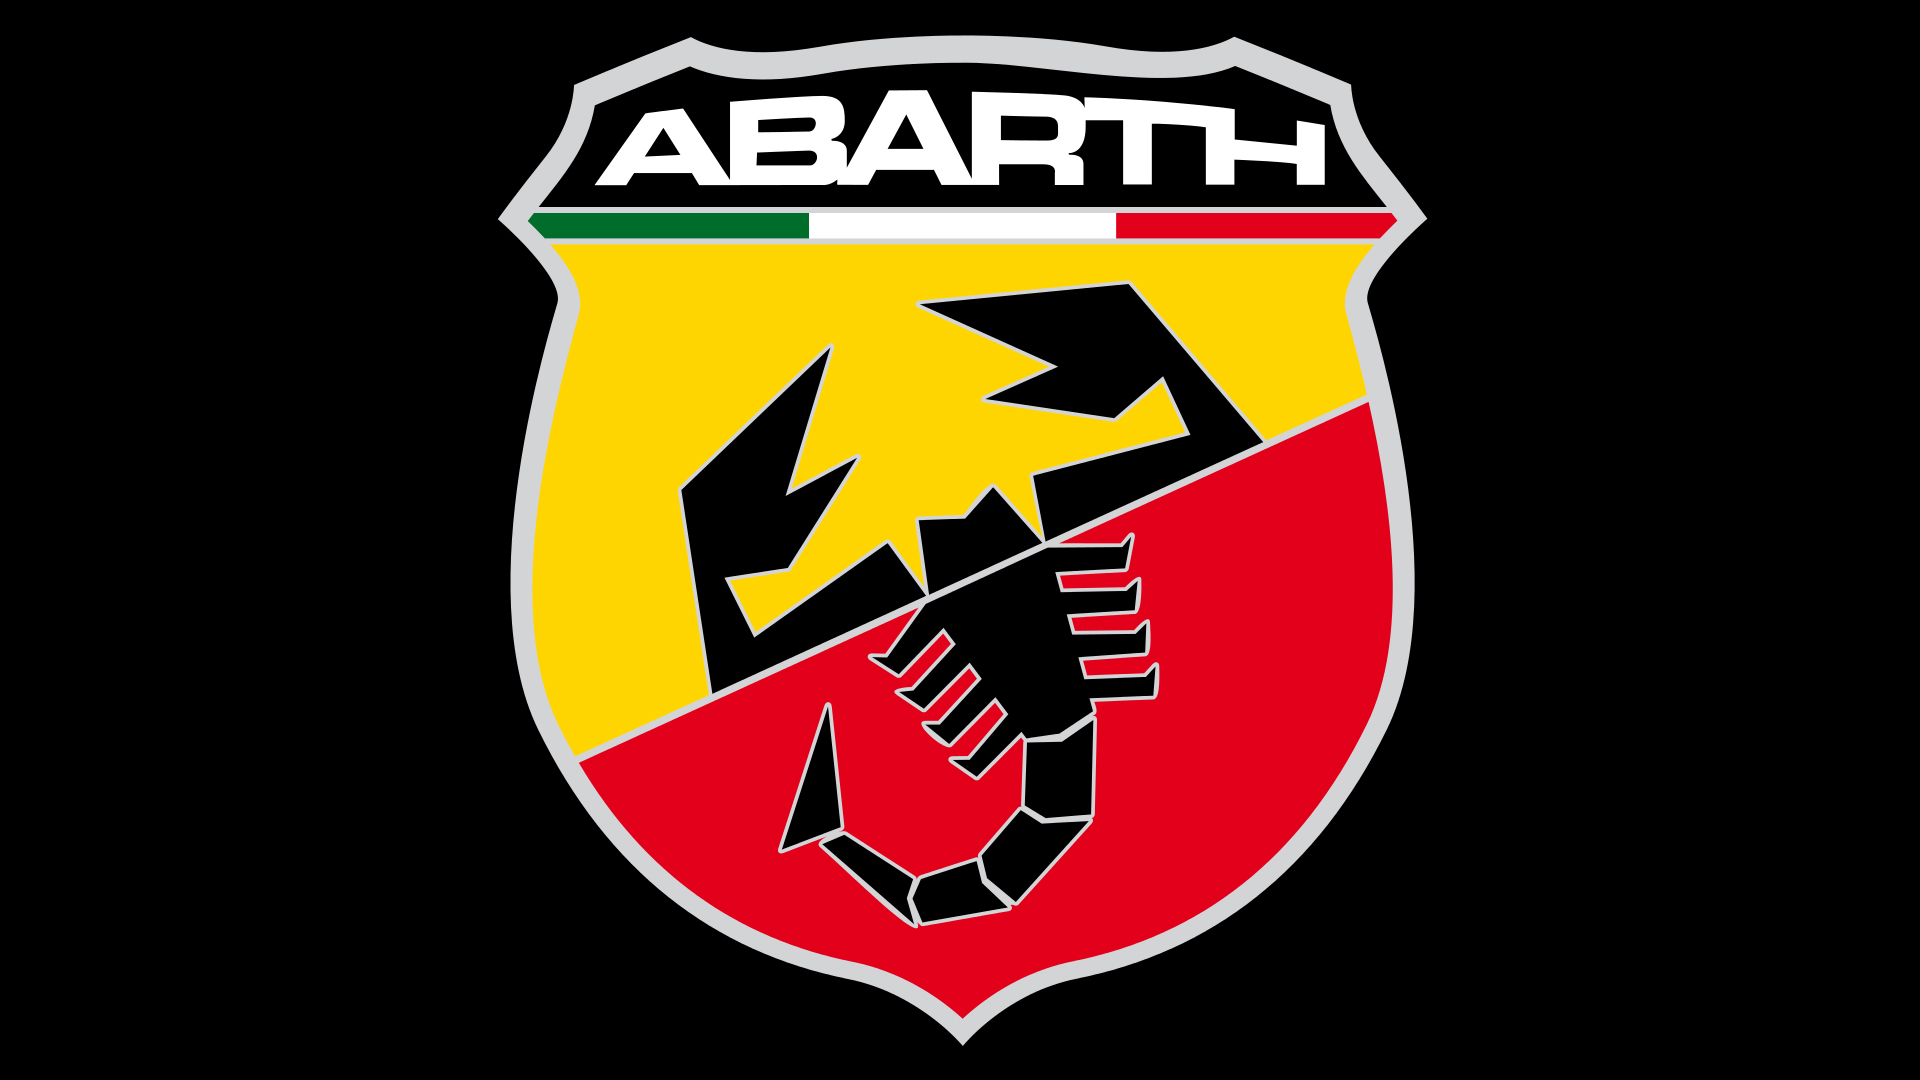 List Of Car Brands >> Abarth Logo Meaning and History [Abarth symbol]